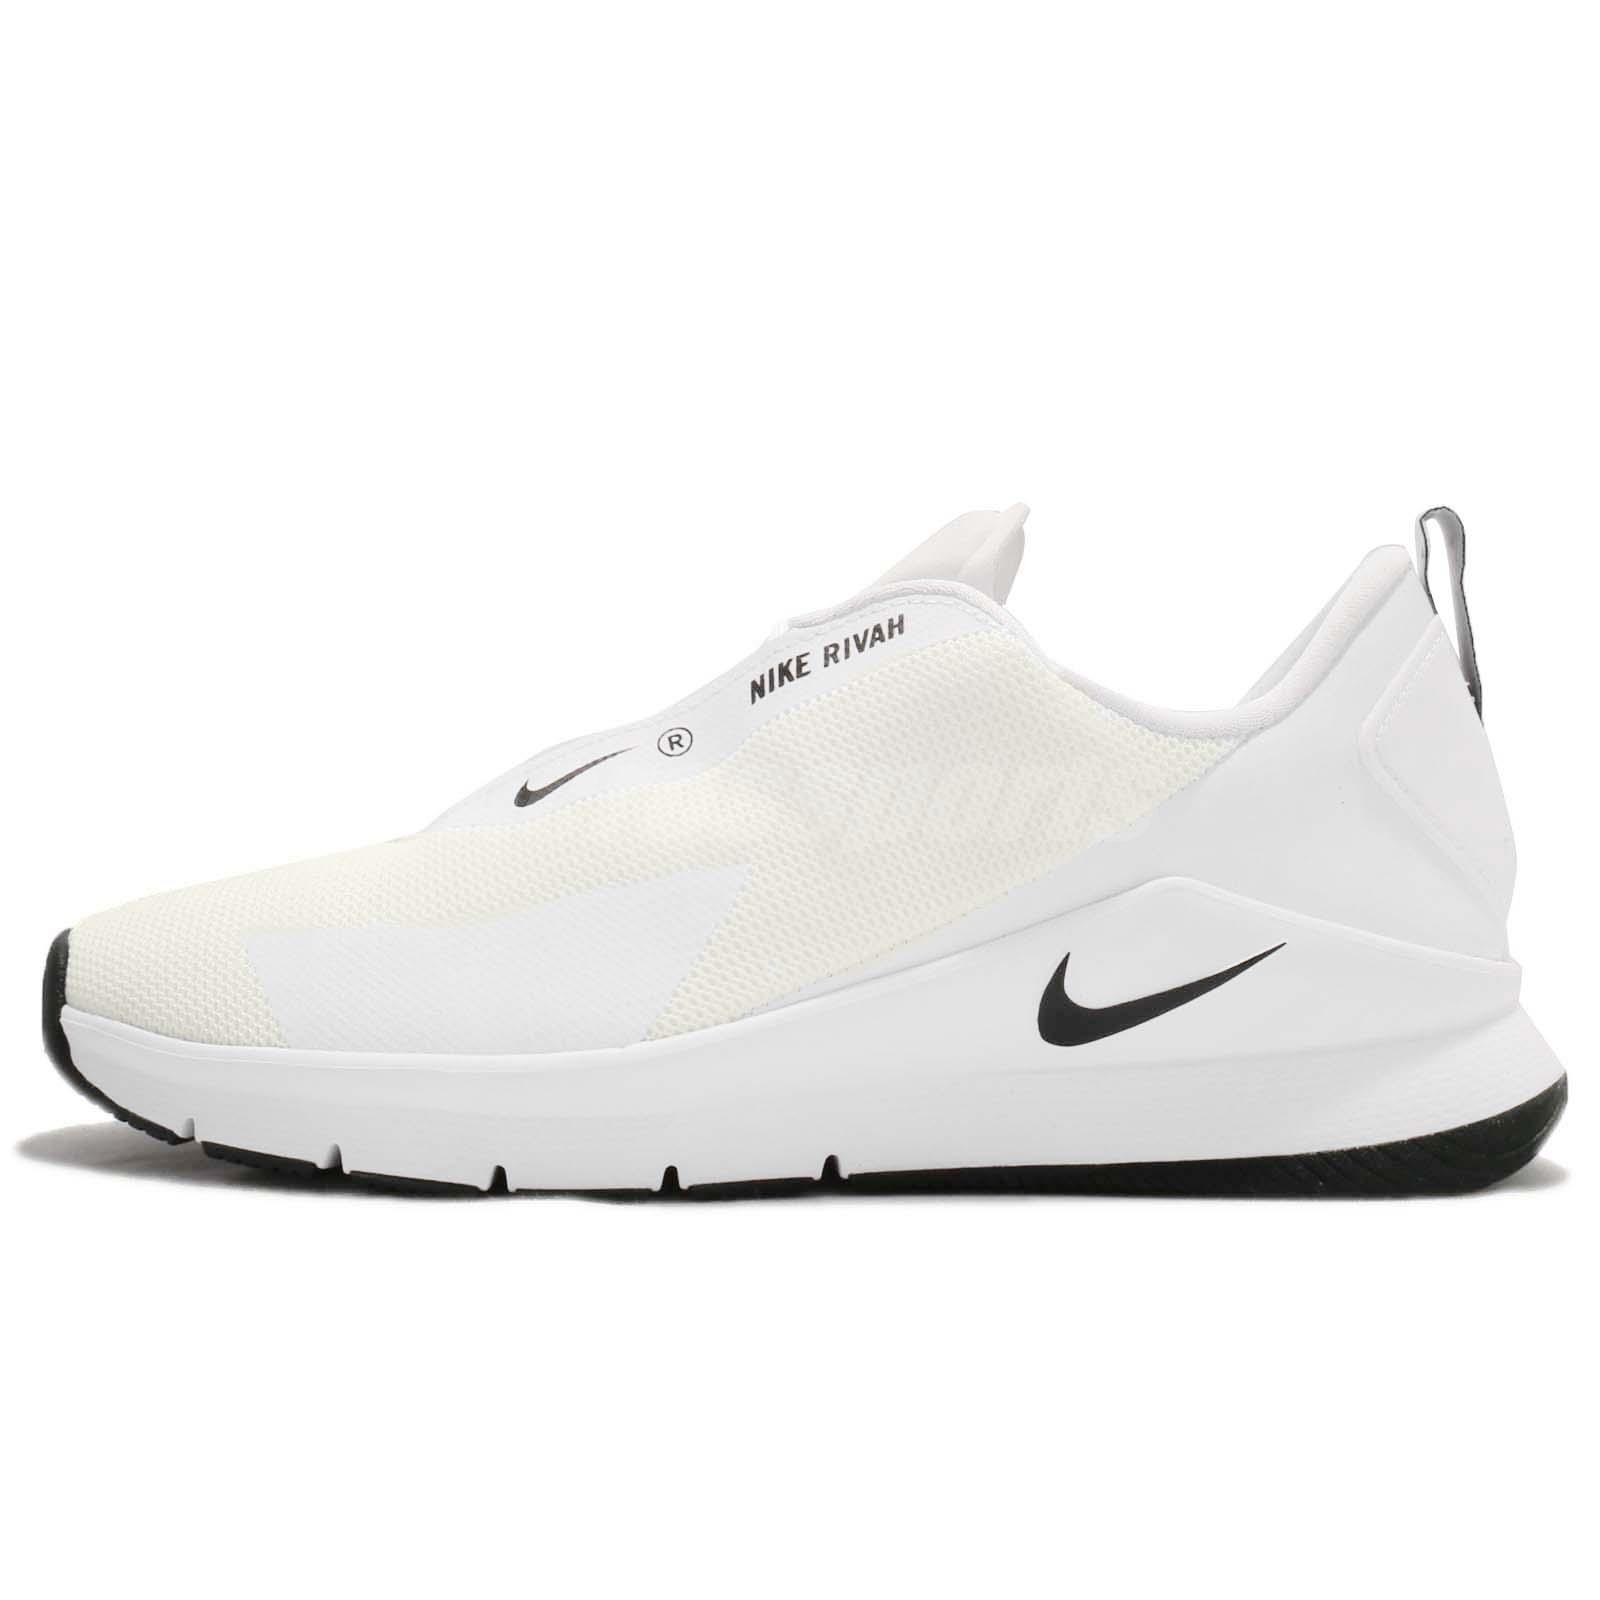 Nike Shoes Made In Which Country